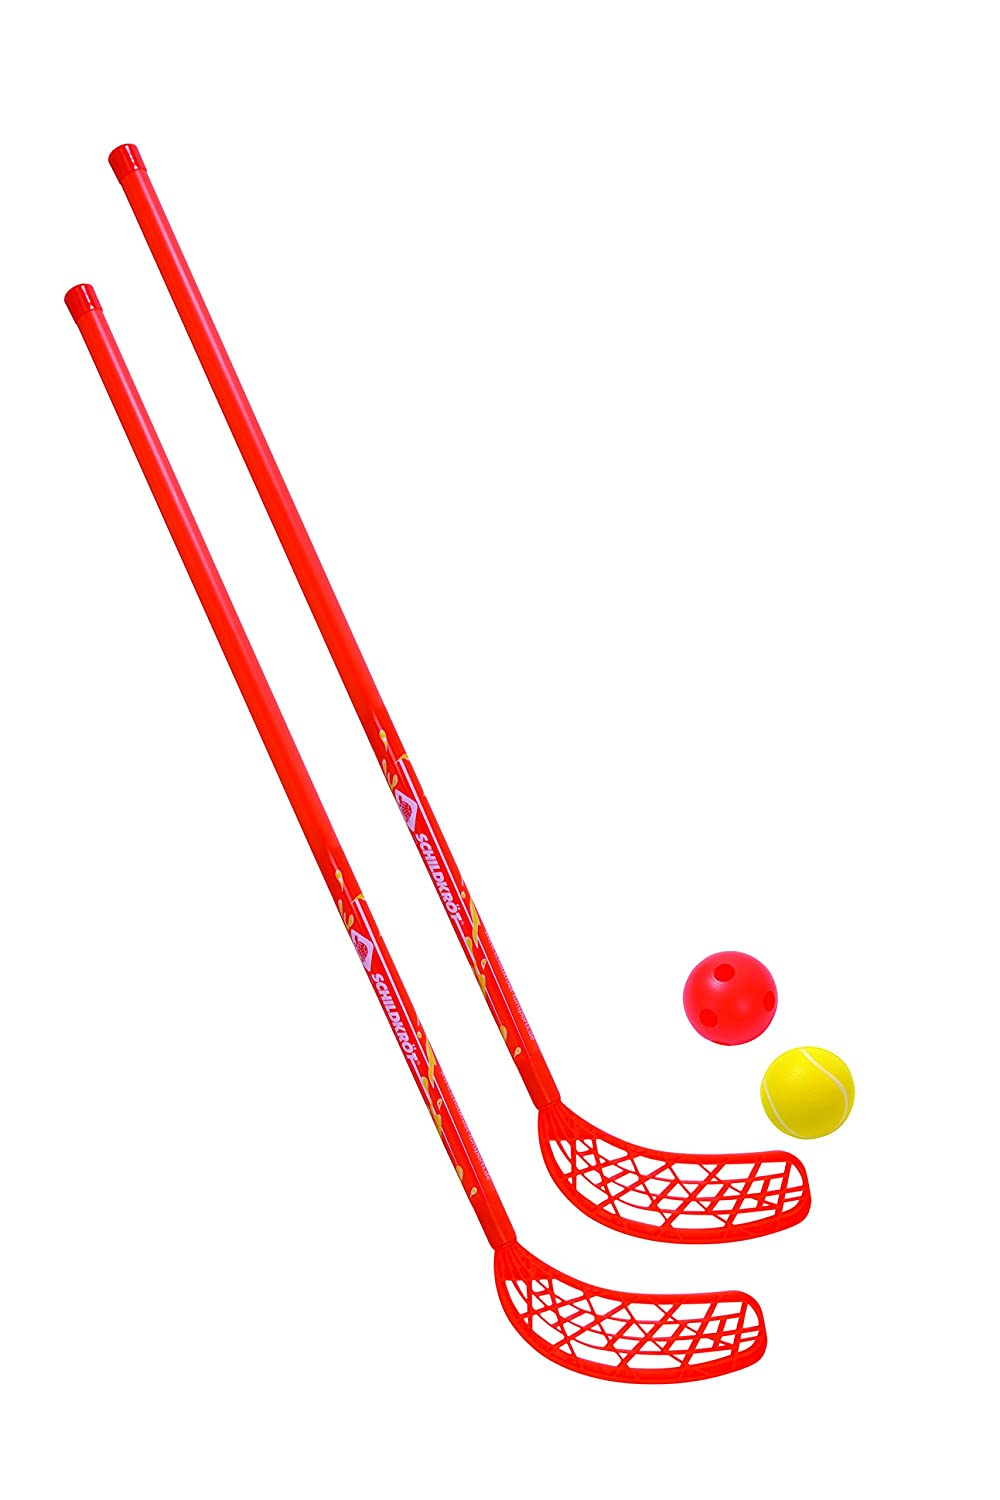 Schildköt Fun-Hockey Set, 2 Hockey Schläger, 2 Bälle Ø70cm, 970135